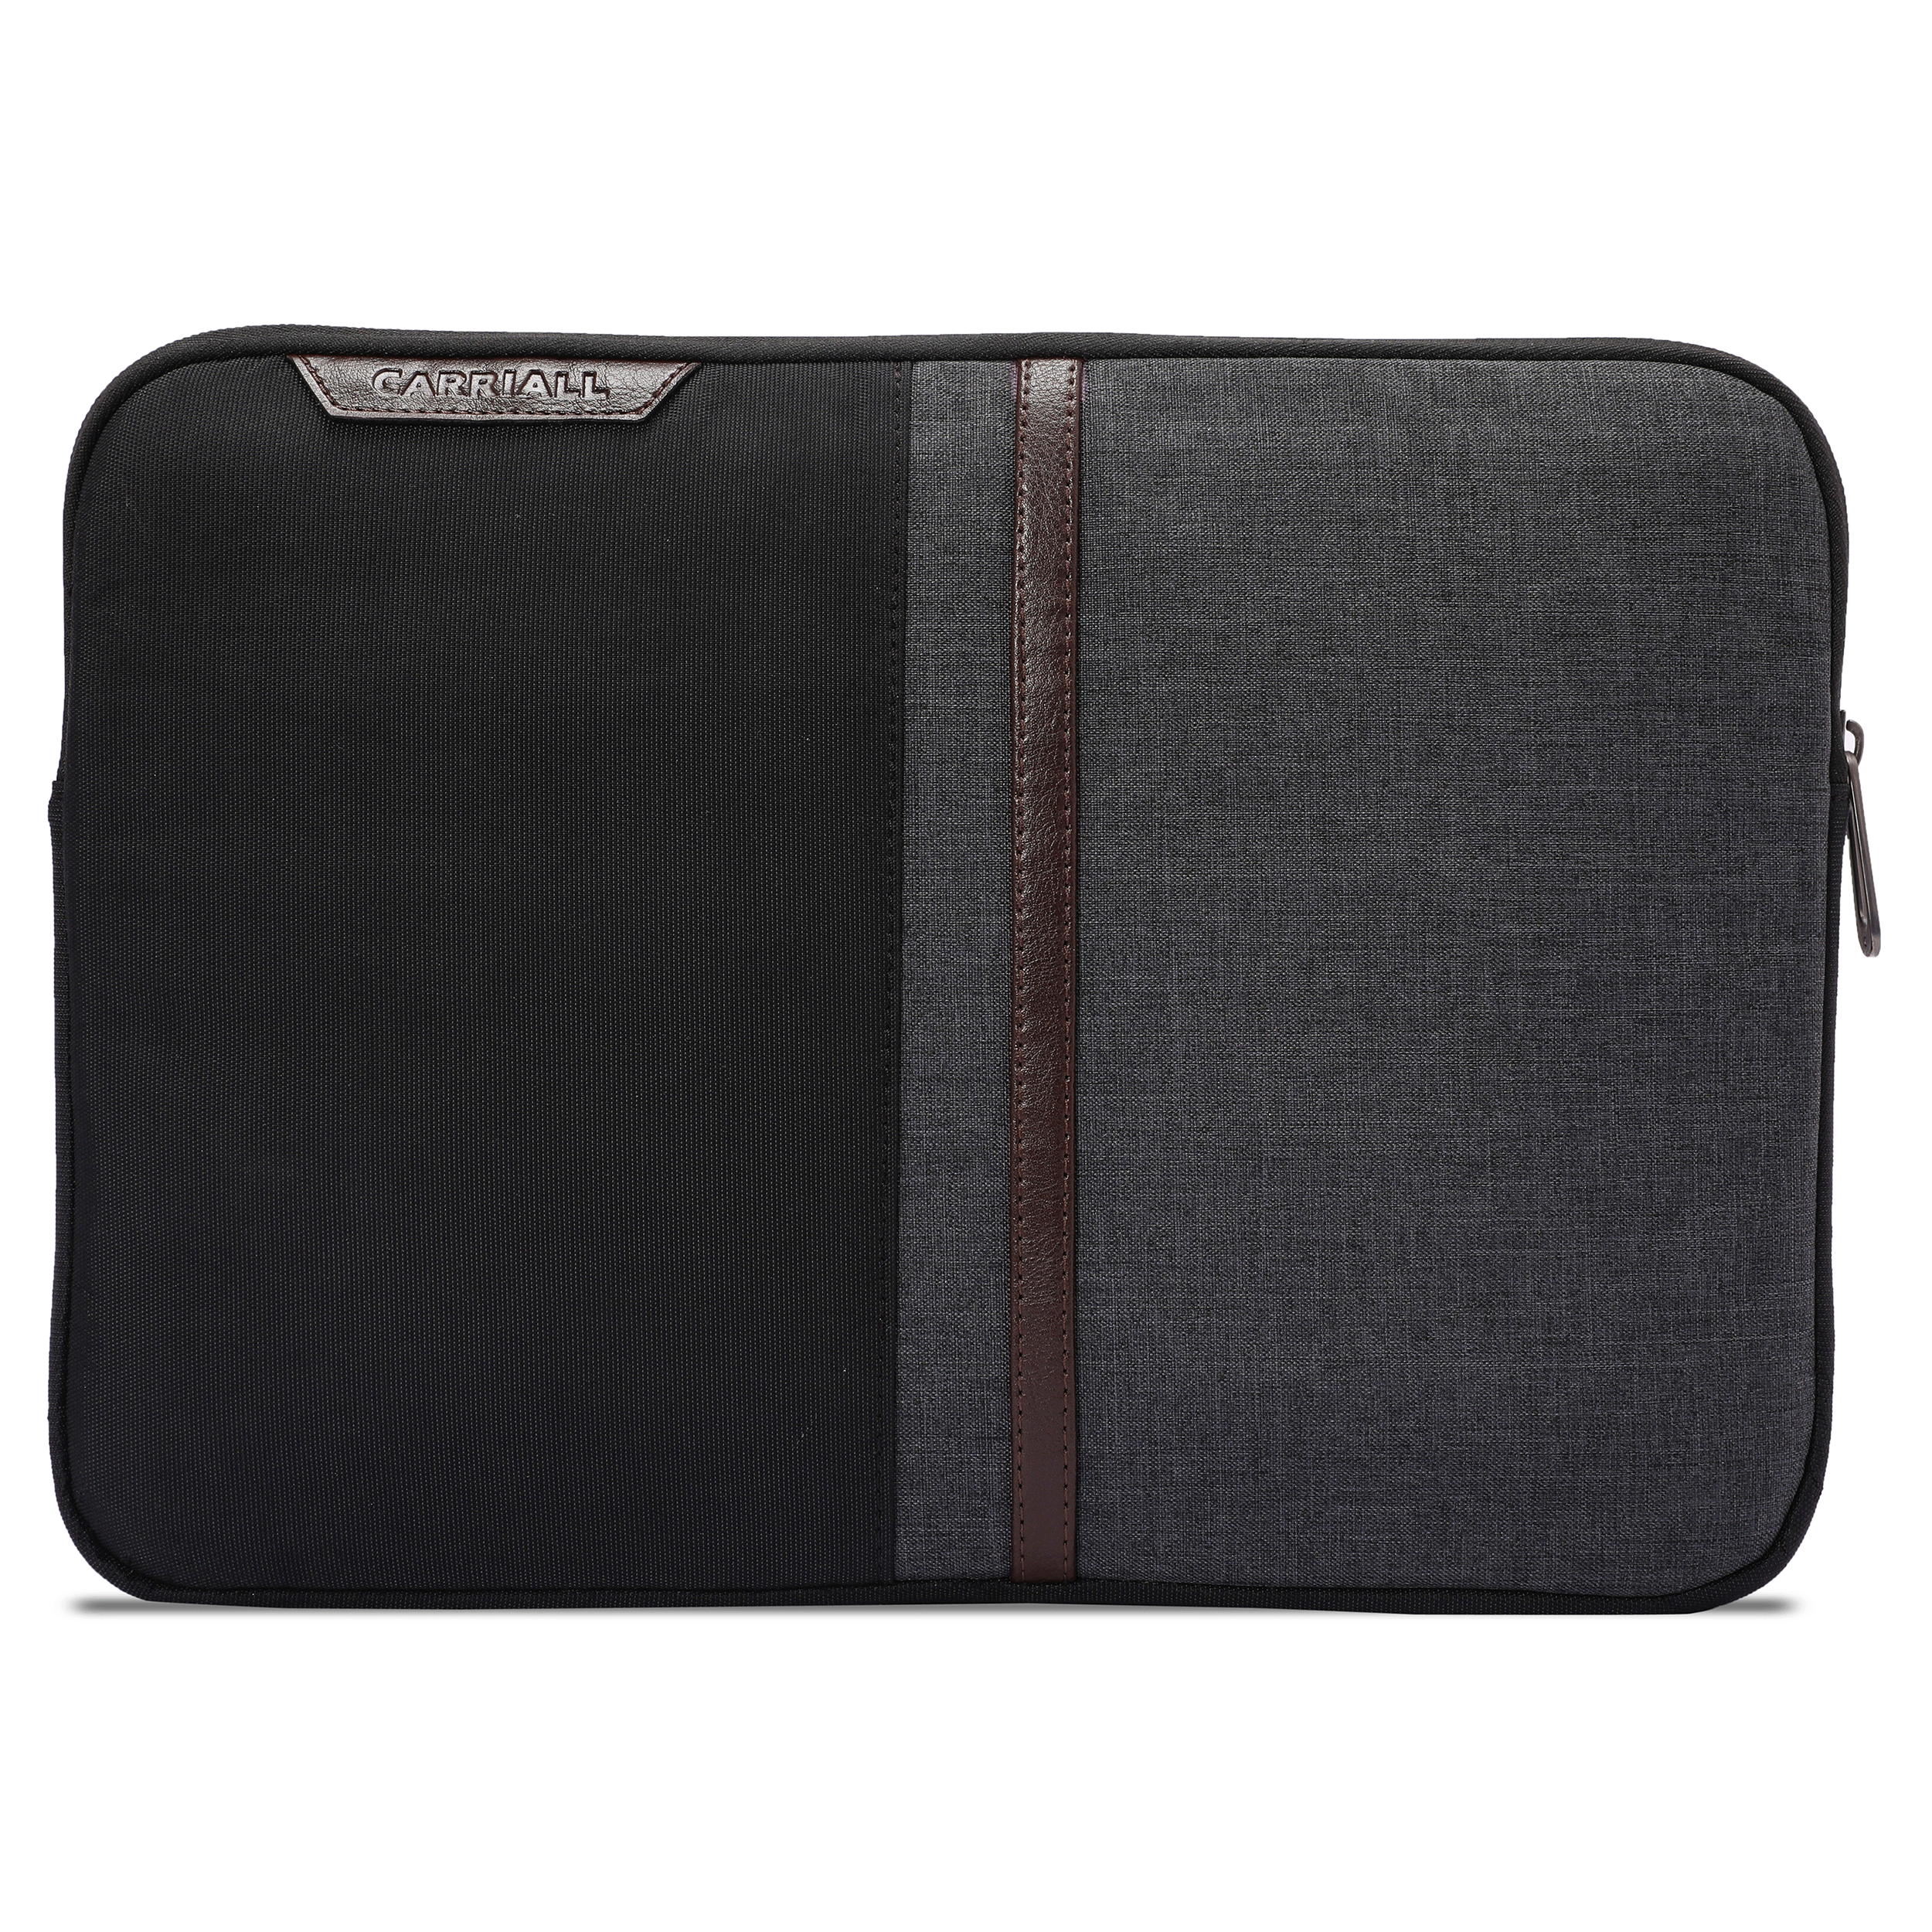 Carriall Suave Durable Fabric Sleeve for 13 inch MacBook (Water Resistant, CALSSUAVEB1, Black)_1